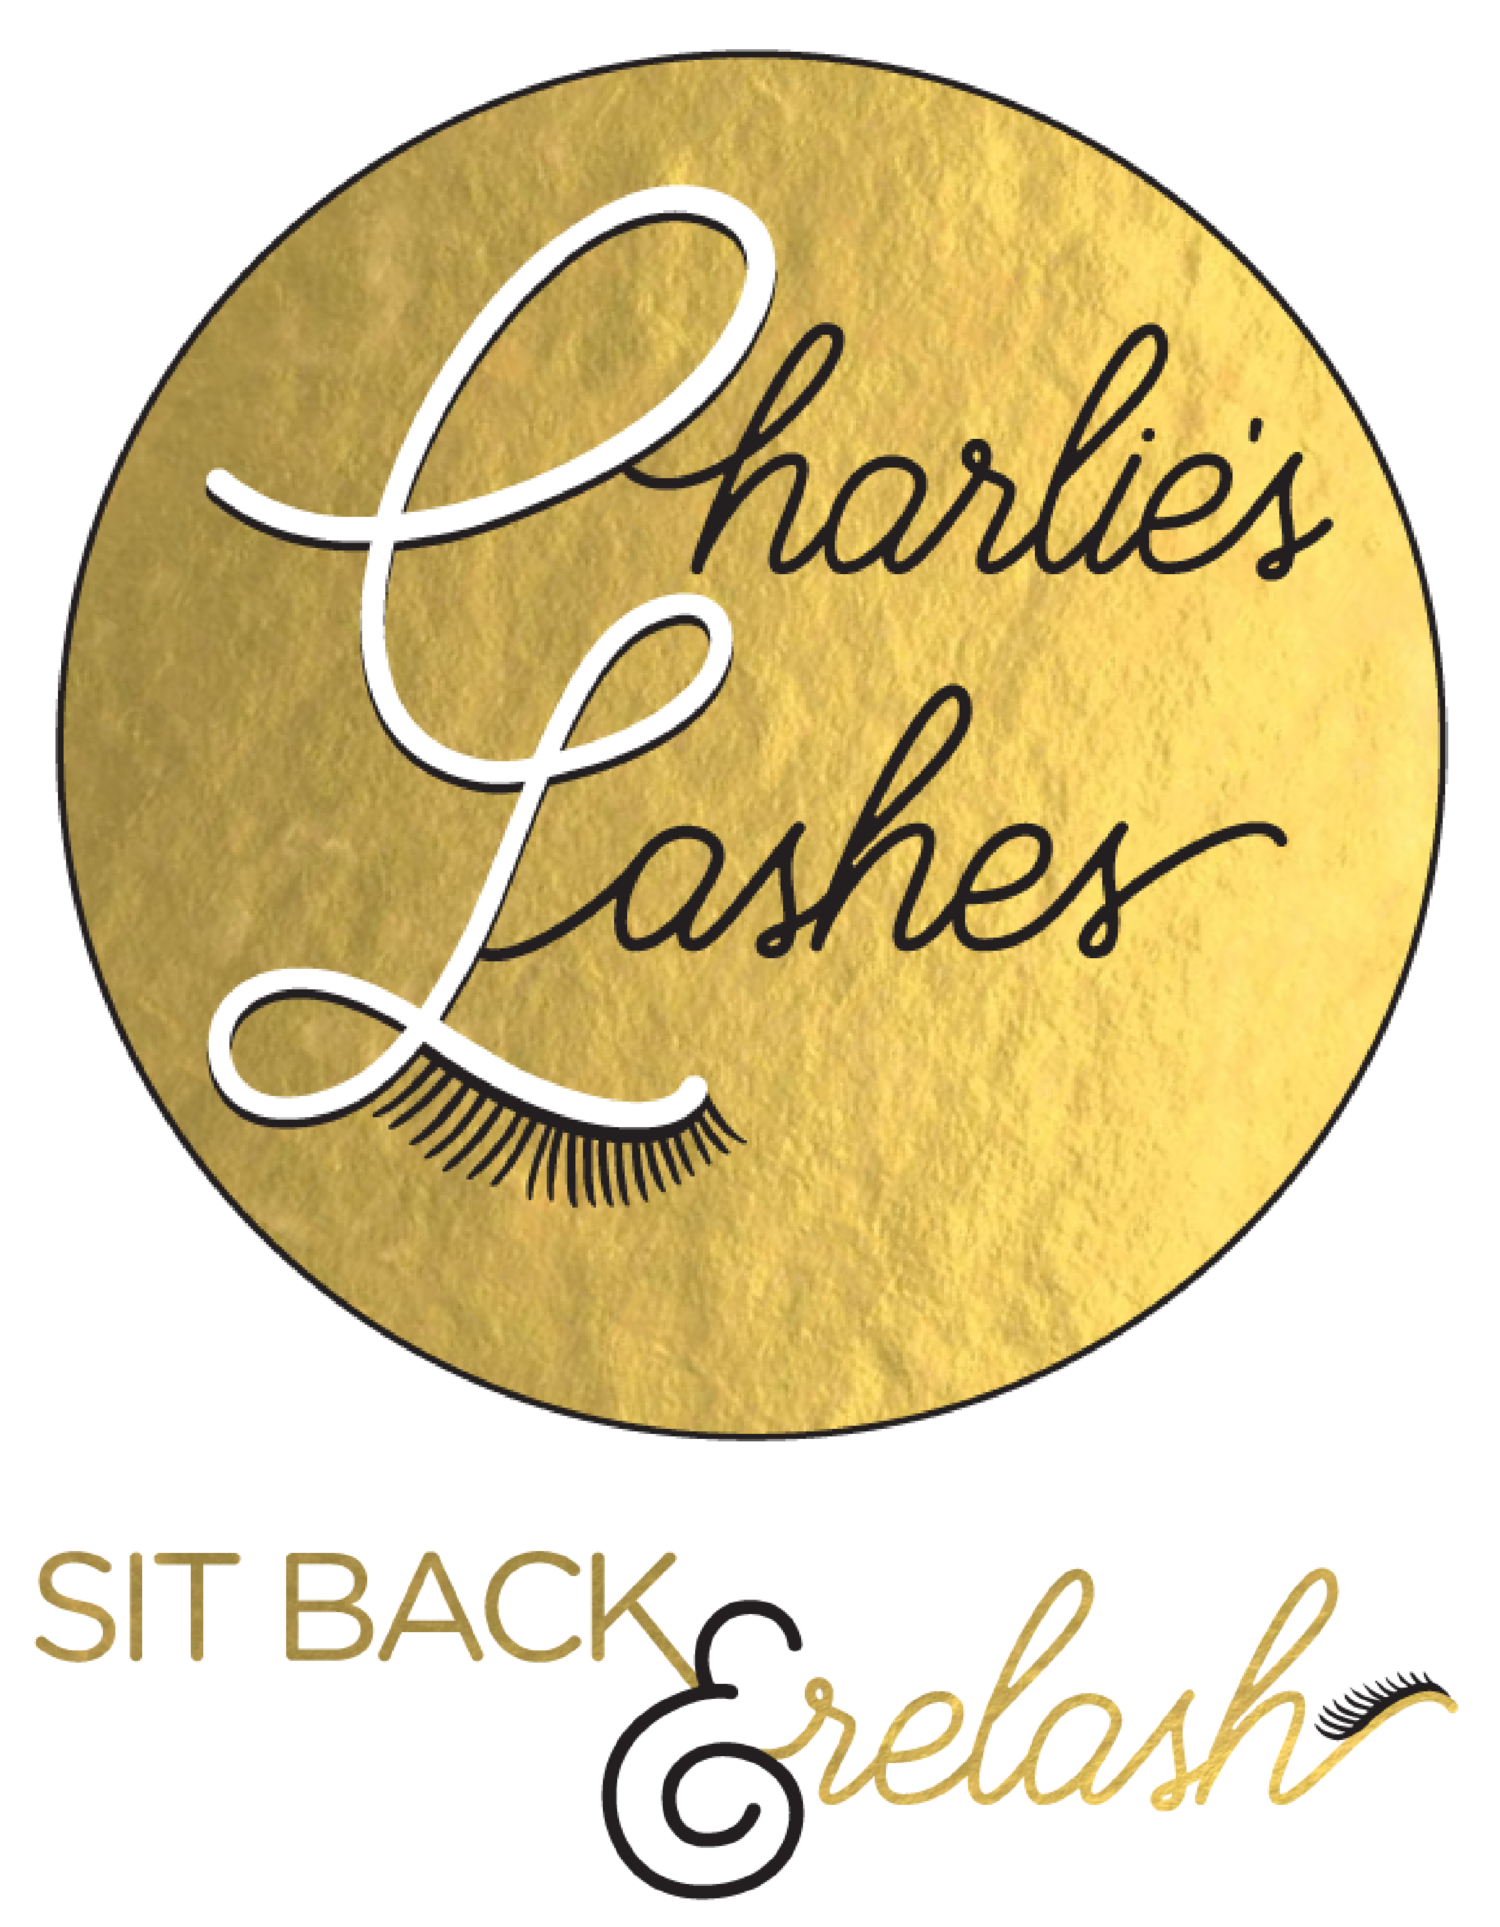 Charlie's Lashes